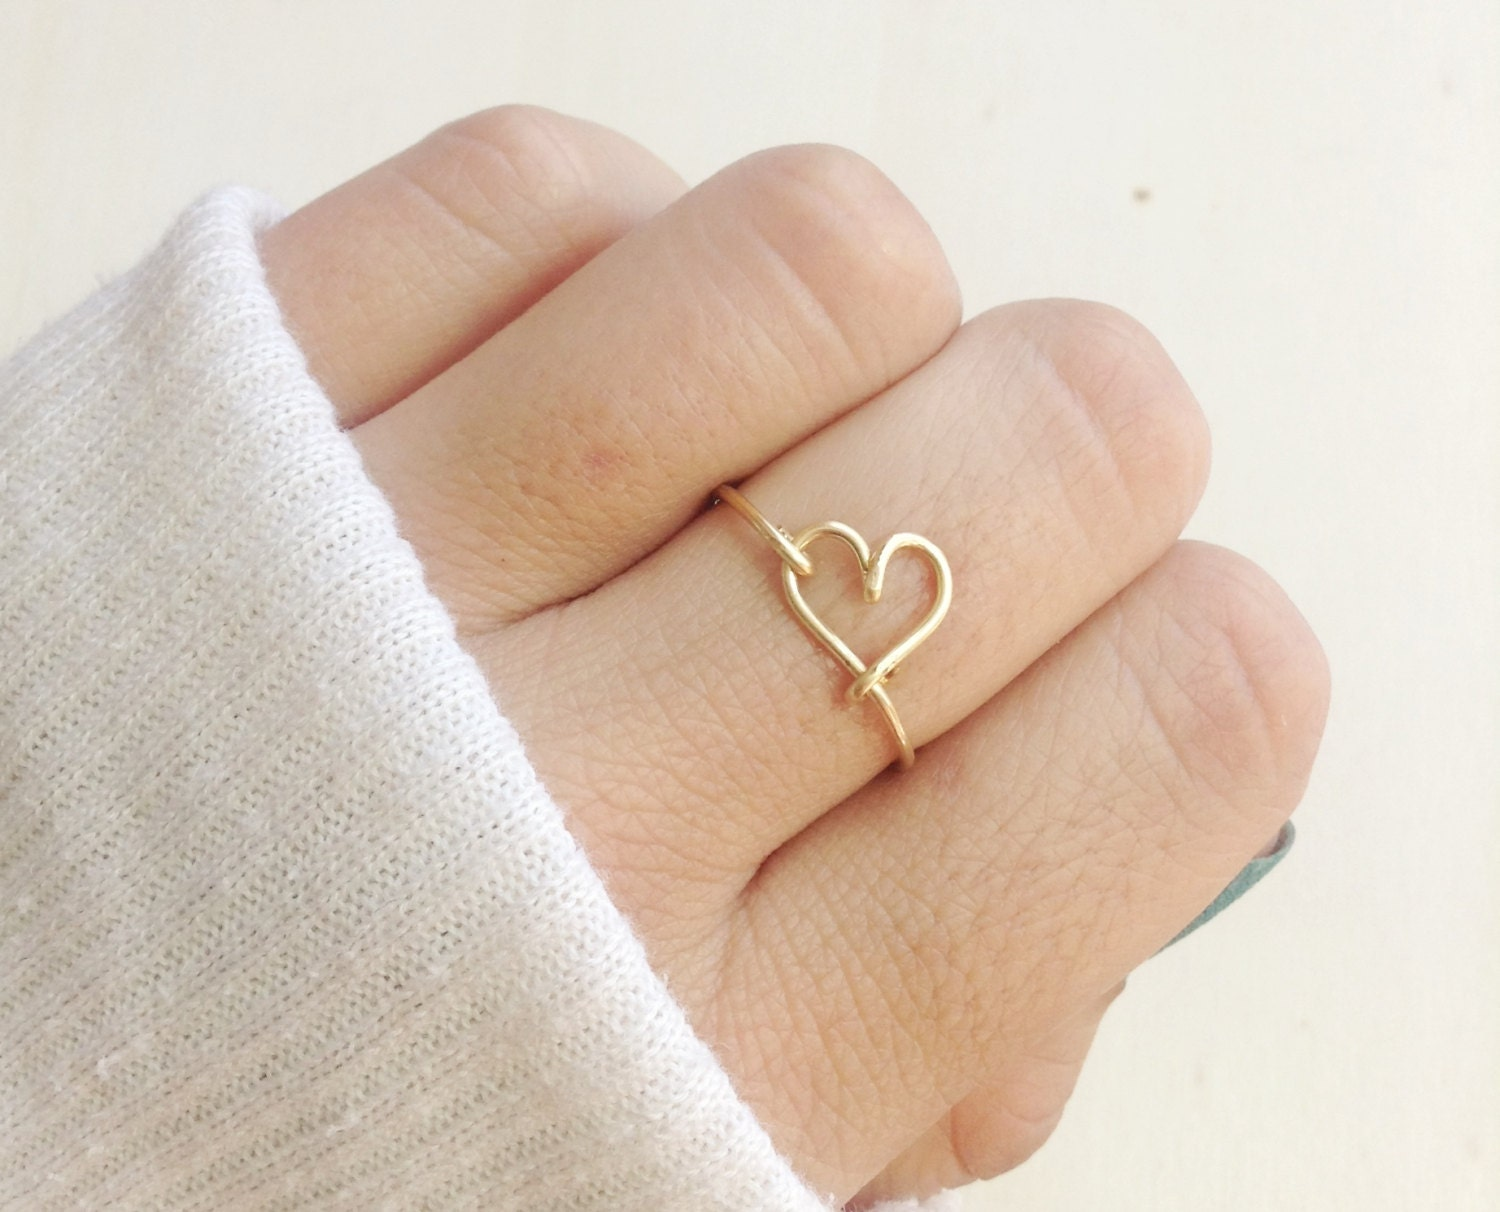 dainty gold heart ring tiny love ring stackable gold or. Black Bedroom Furniture Sets. Home Design Ideas